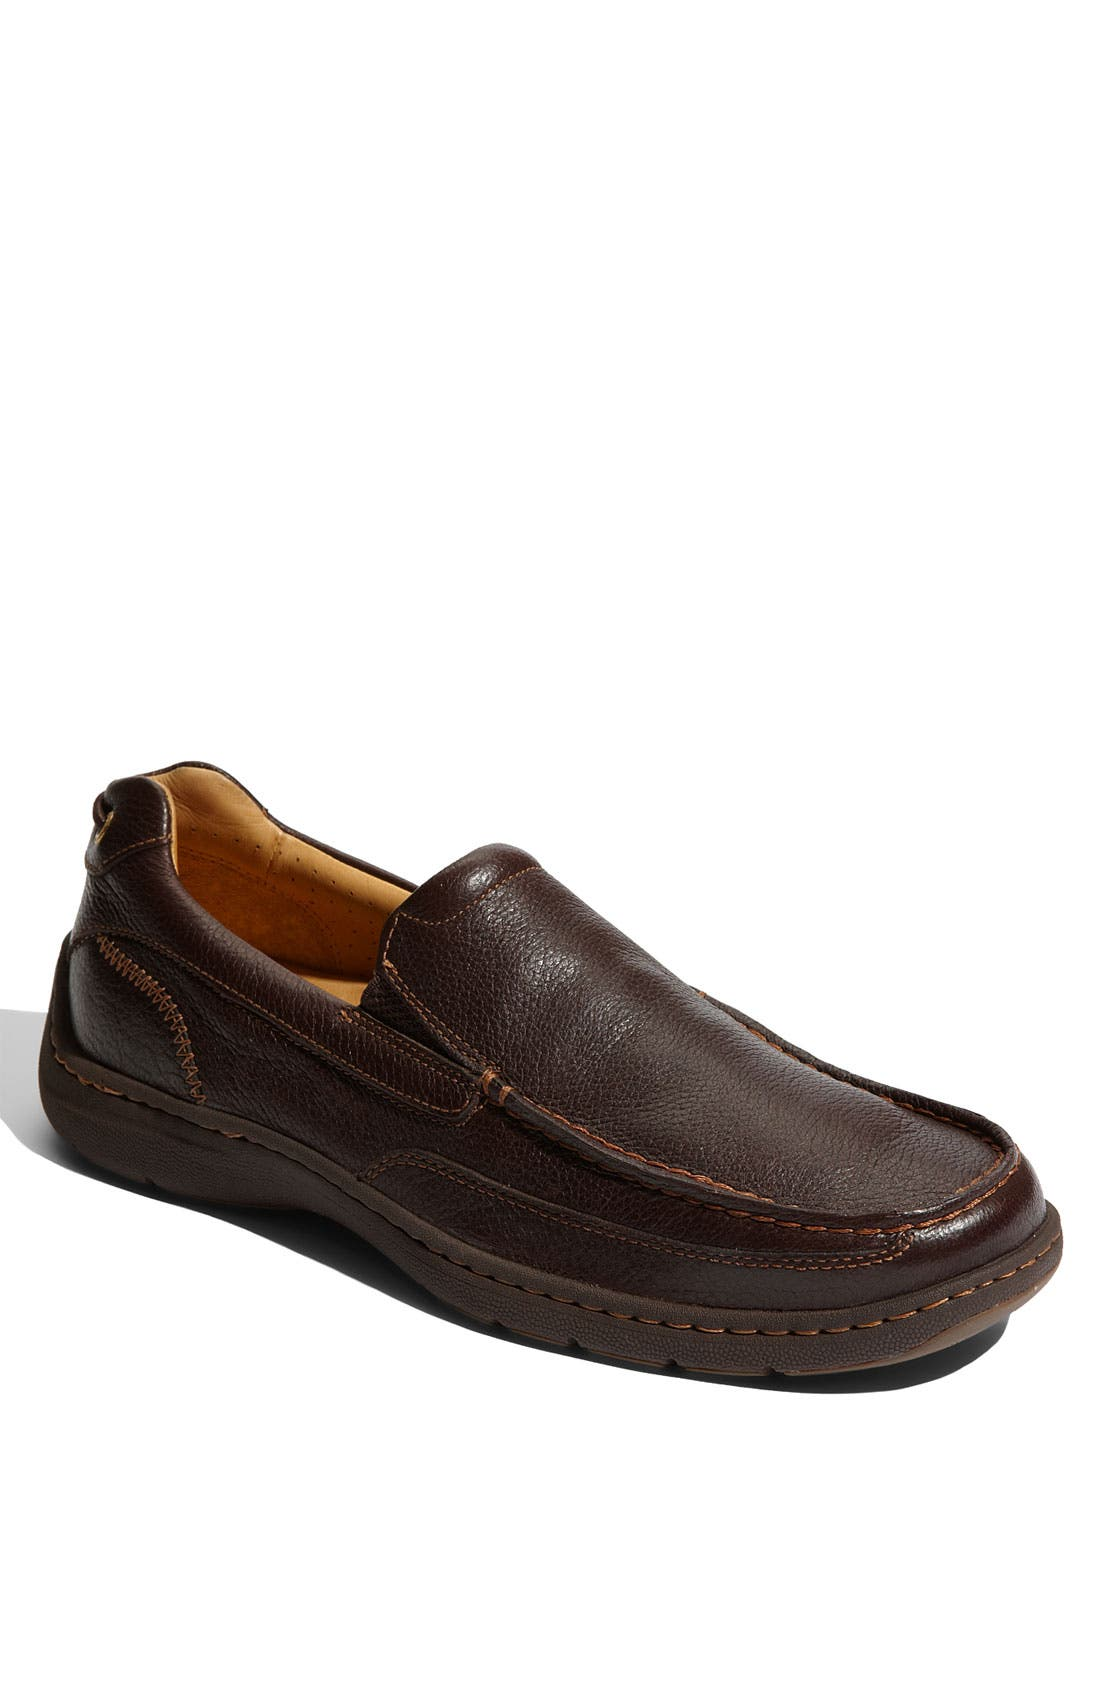 Main Image - Sperry Top-Sider® 'Gold Lux' Leather Loafer